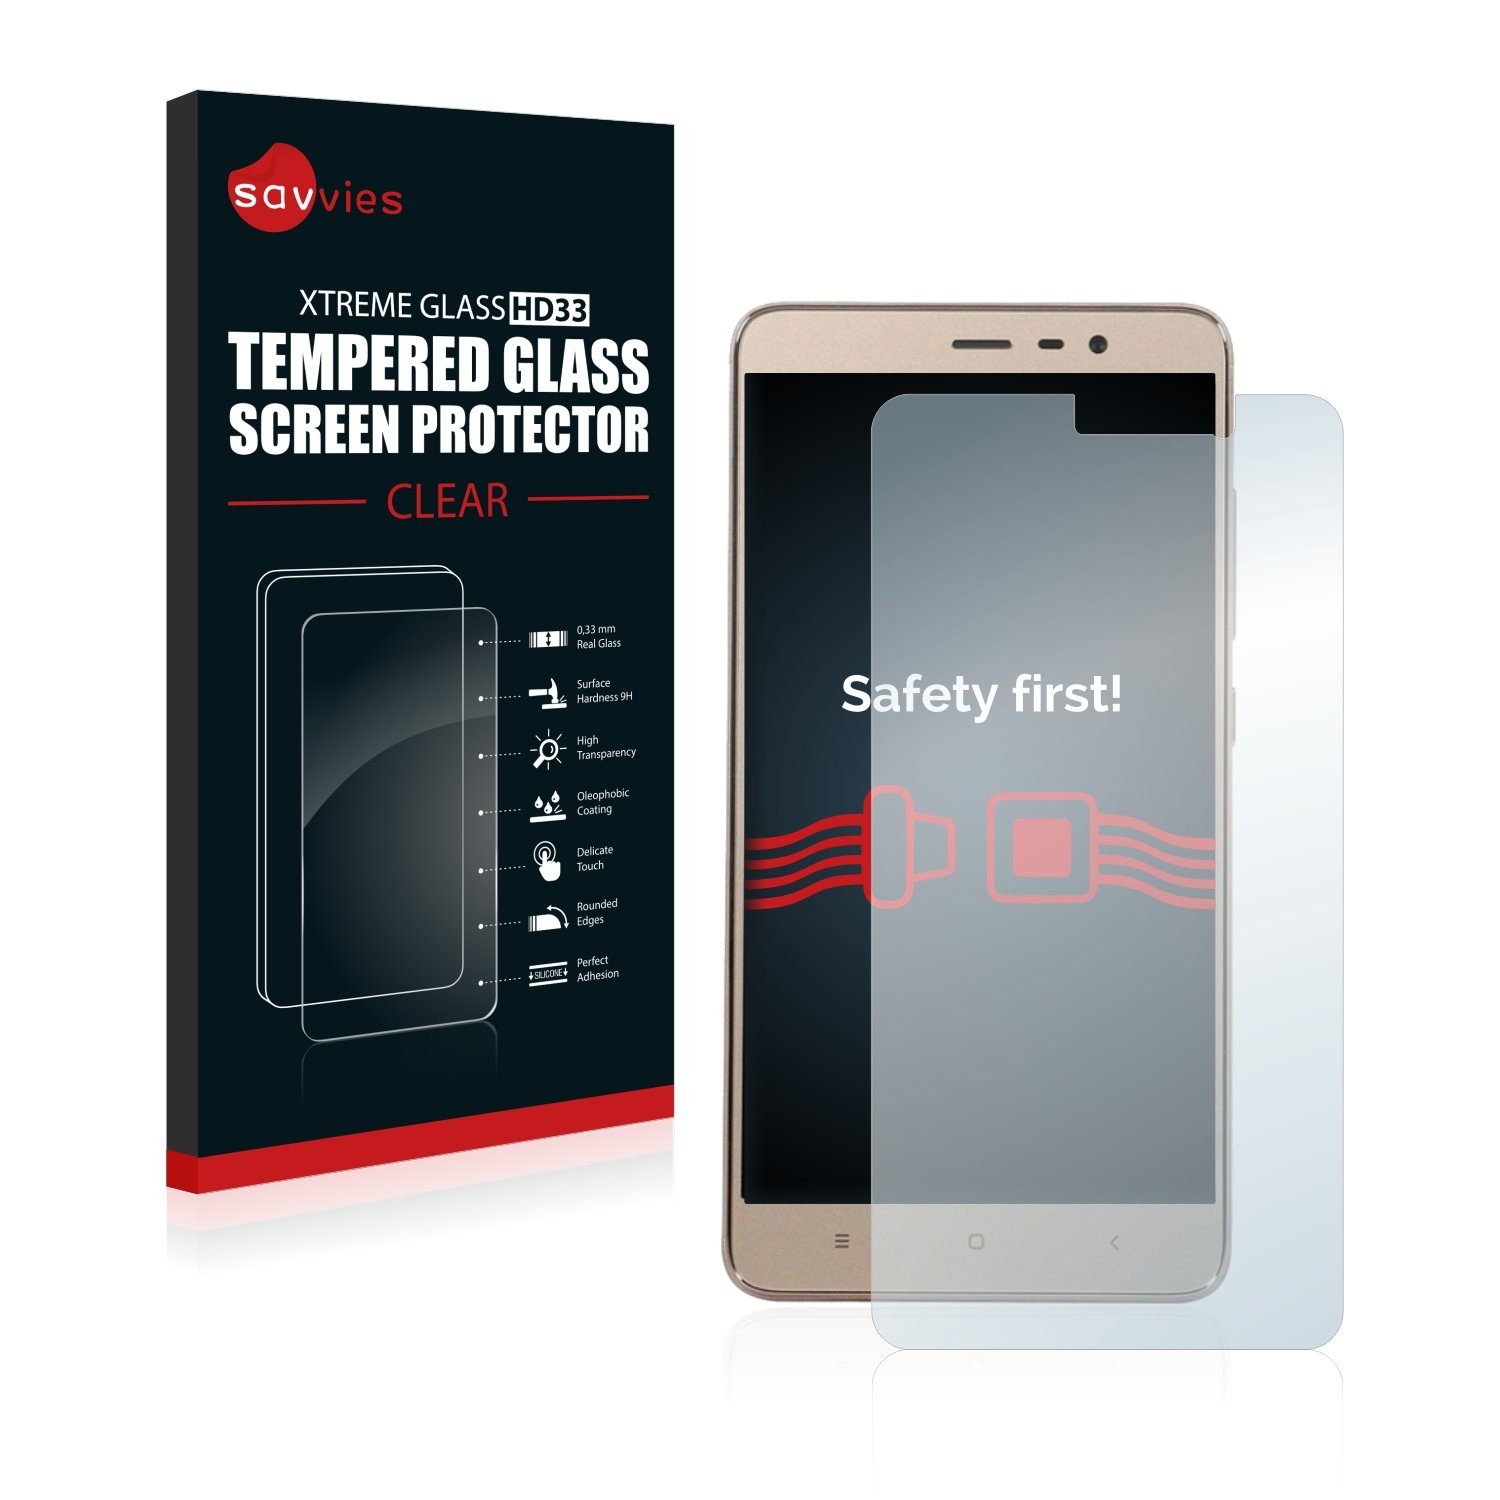 Bedifol 6X Savvies Ultra-Clear Screen Protector for Impulse Evo Smart Compact Residue-Free Removal Simple Assembly accurately Fitting E-Bike Display